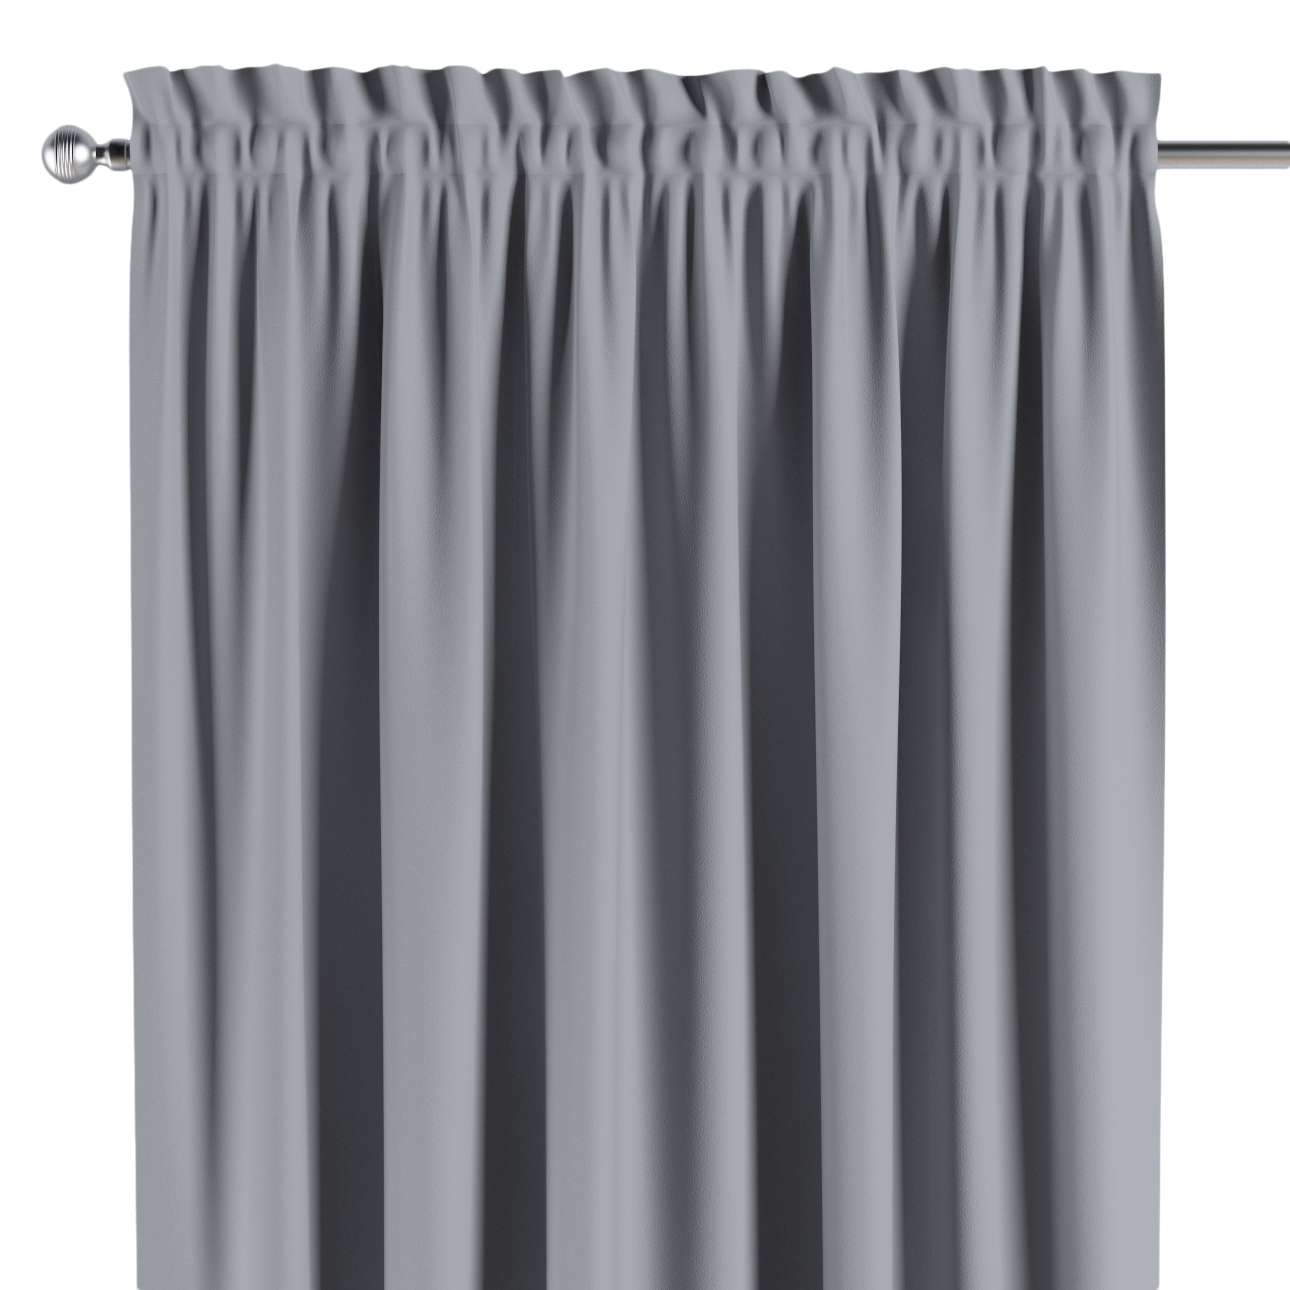 Blackout slot and frill curtains 140 × 260 cm (approx. 55 × 102 inch) in collection Blackout, fabric: 269-96